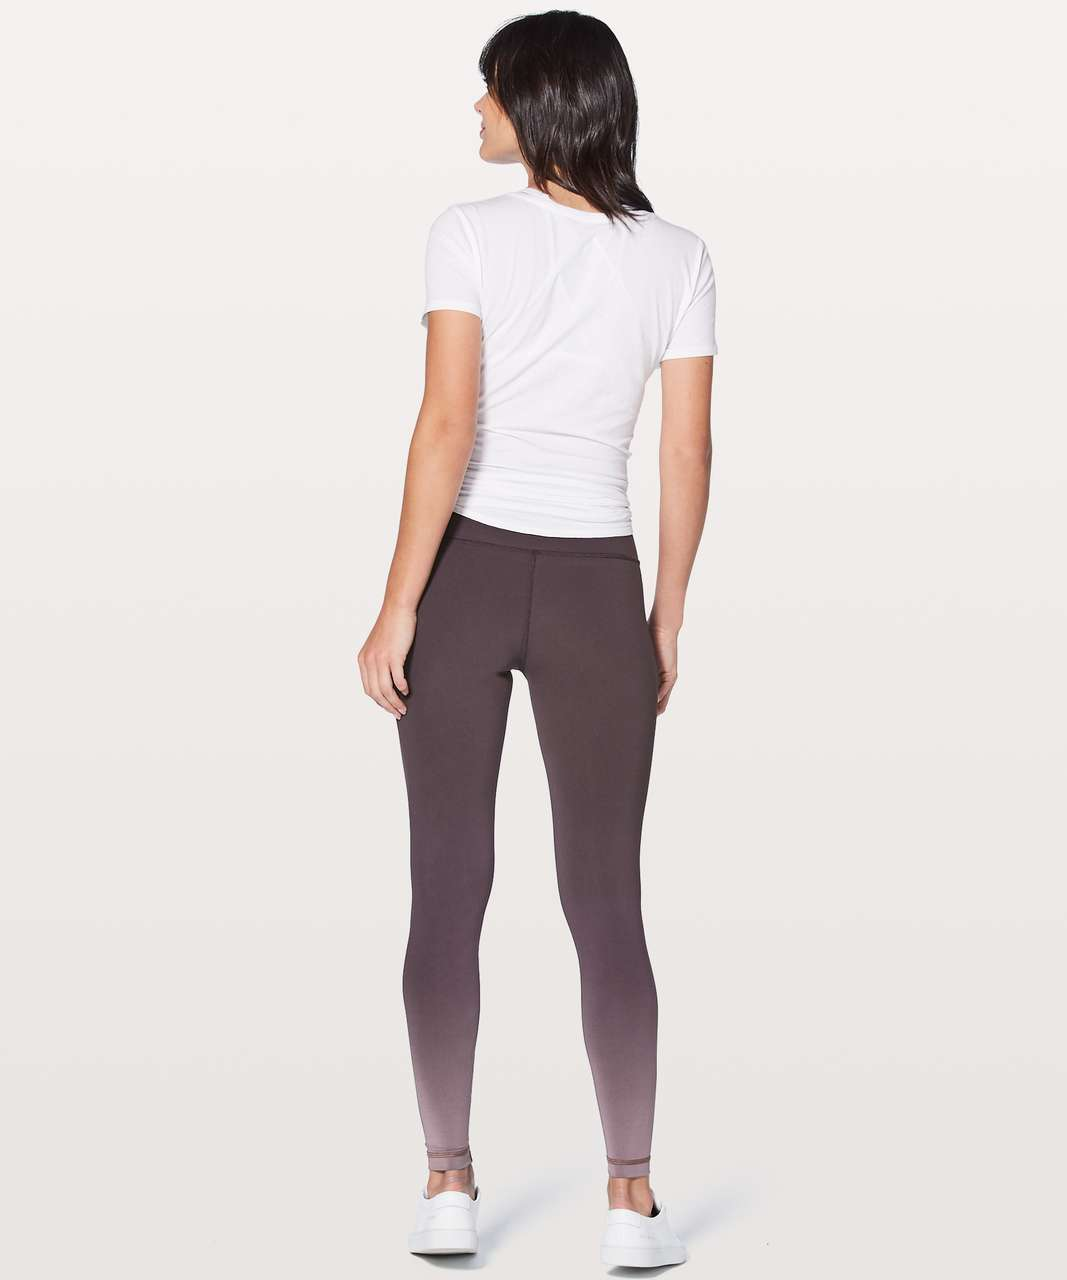 "Lululemon Wunder Under Hi-Rise Tight (Ombre) 28"" - Ombre Boysenberry"